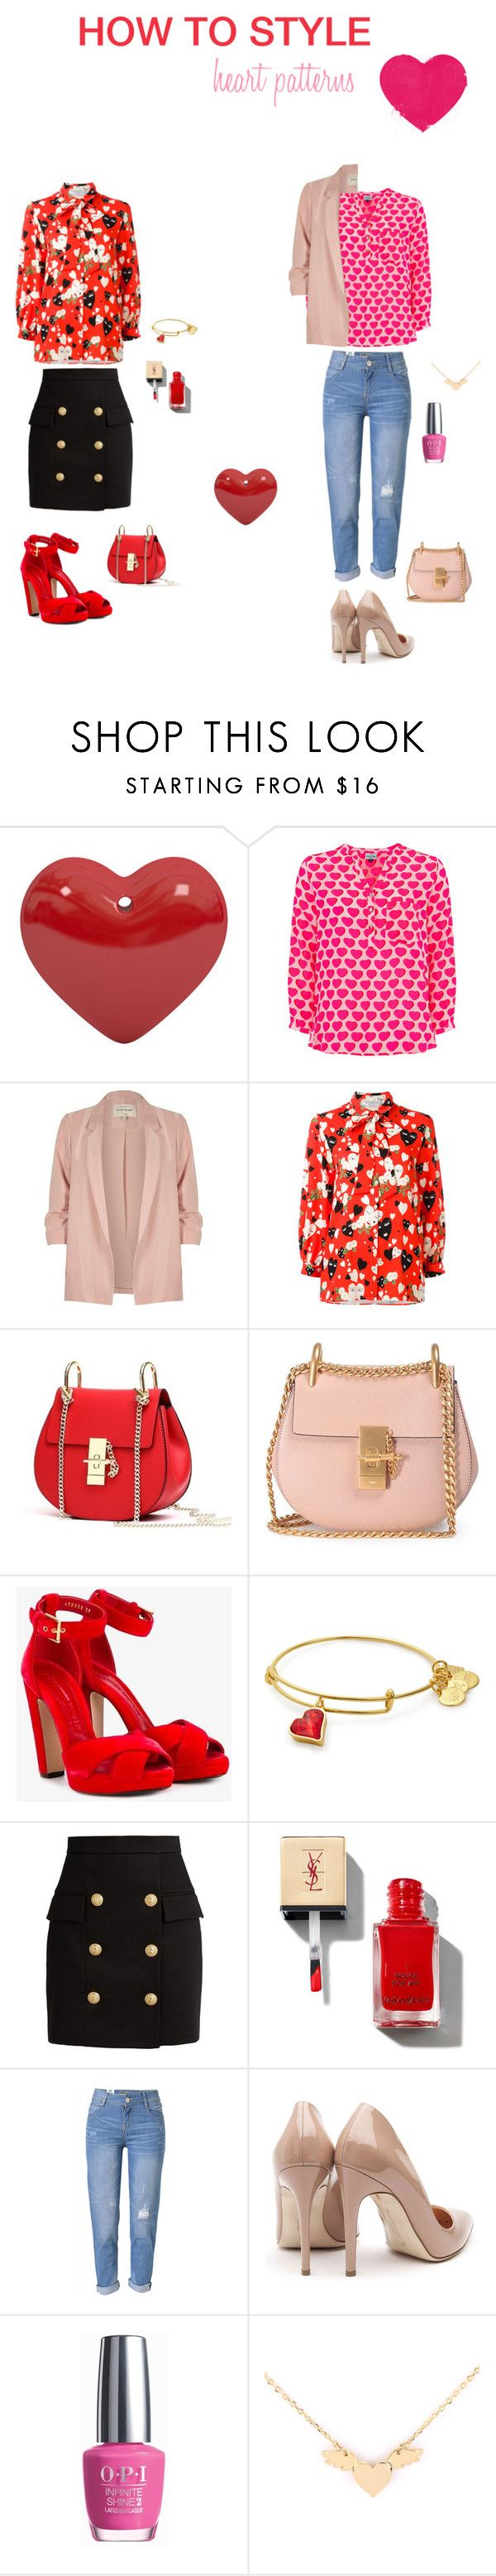 """""""Heart Patterns"""" by stephanie-barnett ❤ liked on Polyvore featuring Mercy Delta, River Island, VIVETTA, Chloé, Alexander McQueen, Balmain, WithChic, Rupert Sanderson and OPI"""